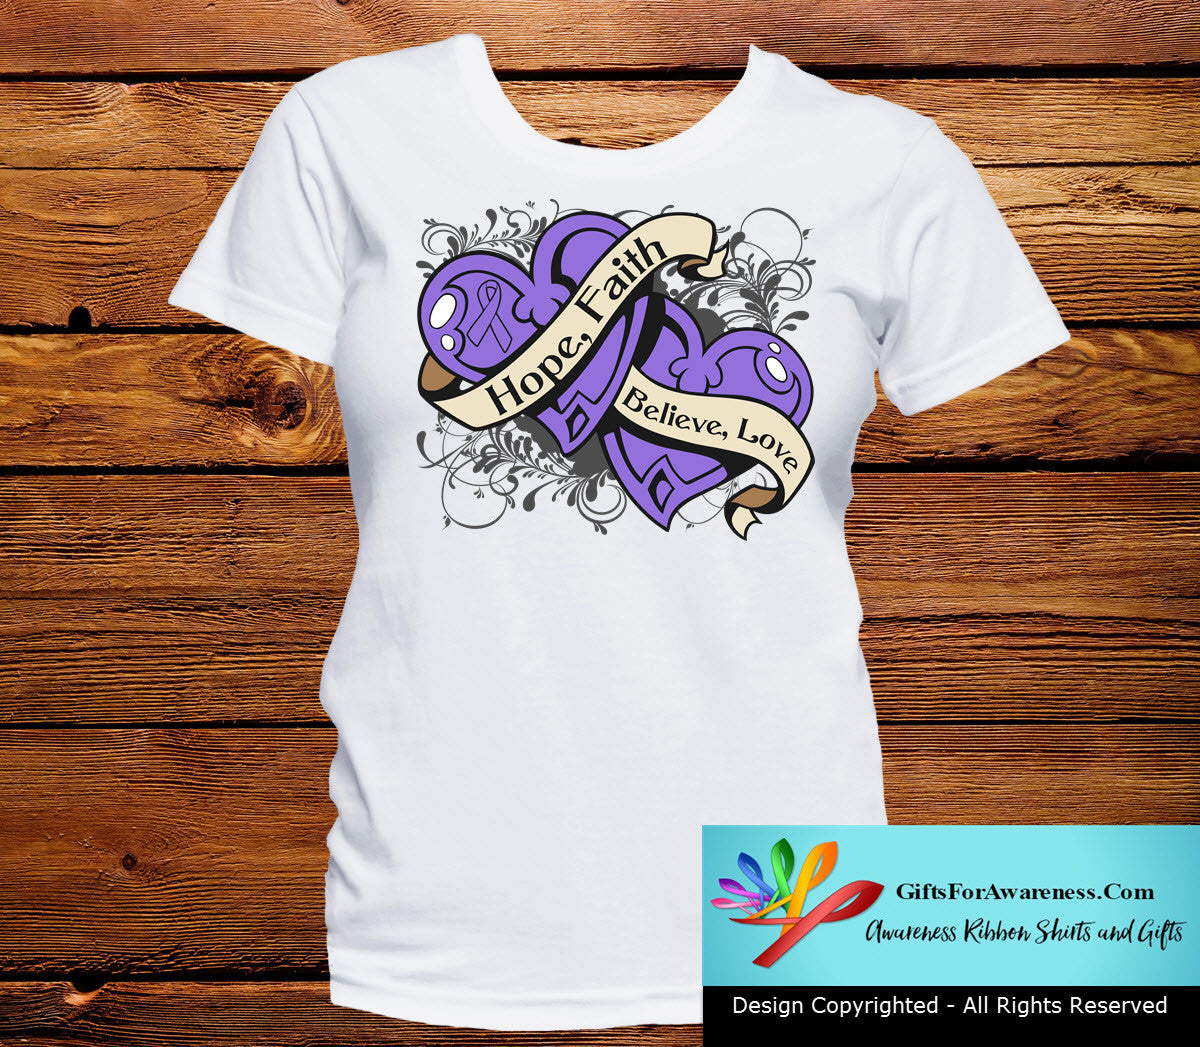 Hodgkin's Lymphoma Hope Believe Faith Love Shirts - GiftsForAwareness